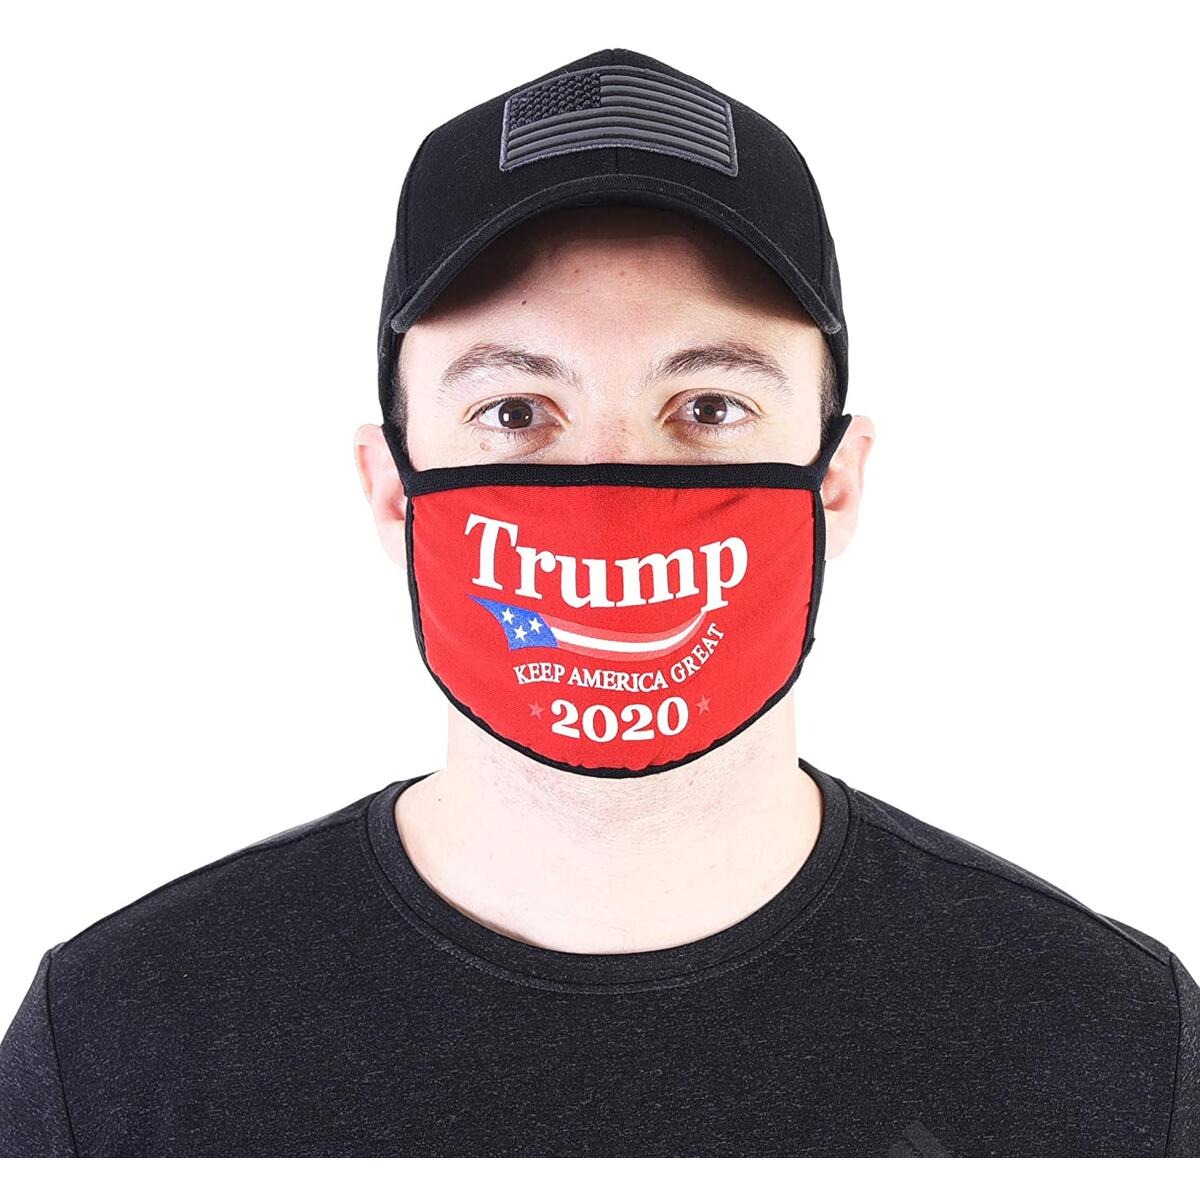 Trump Mask 2-PACK | Trump 2020 MAGA Army Face Mask Patriotic Military Donald Trump Reusable Breathable Washable Cloth Fabric Balaclava Bandanna Neck Gaiter Men Women Funny Face Mask for Adults (Red)